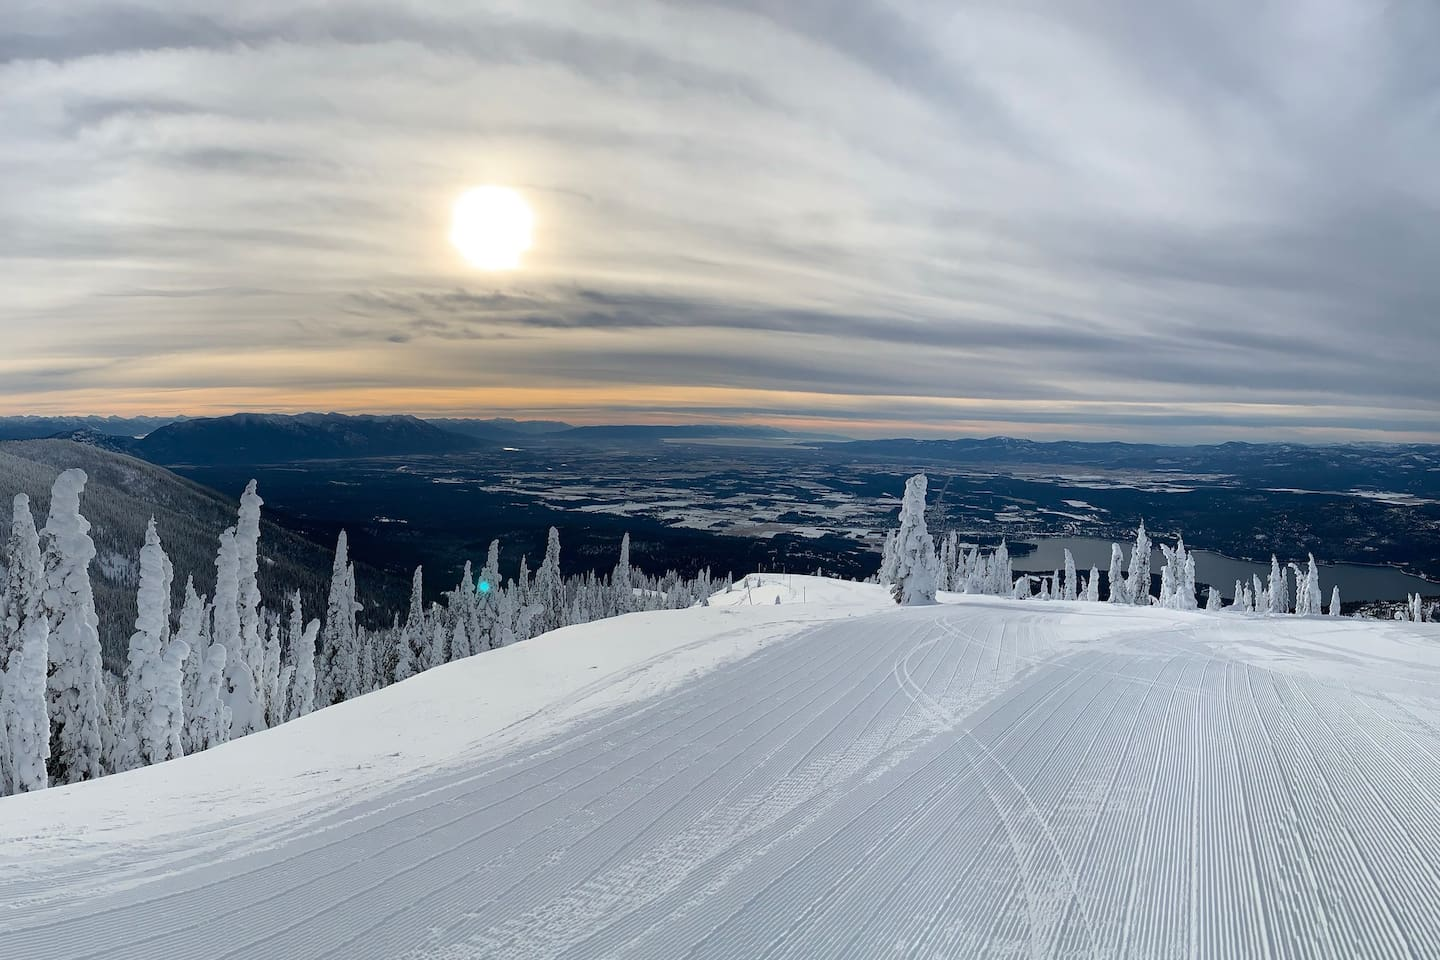 From the slopes